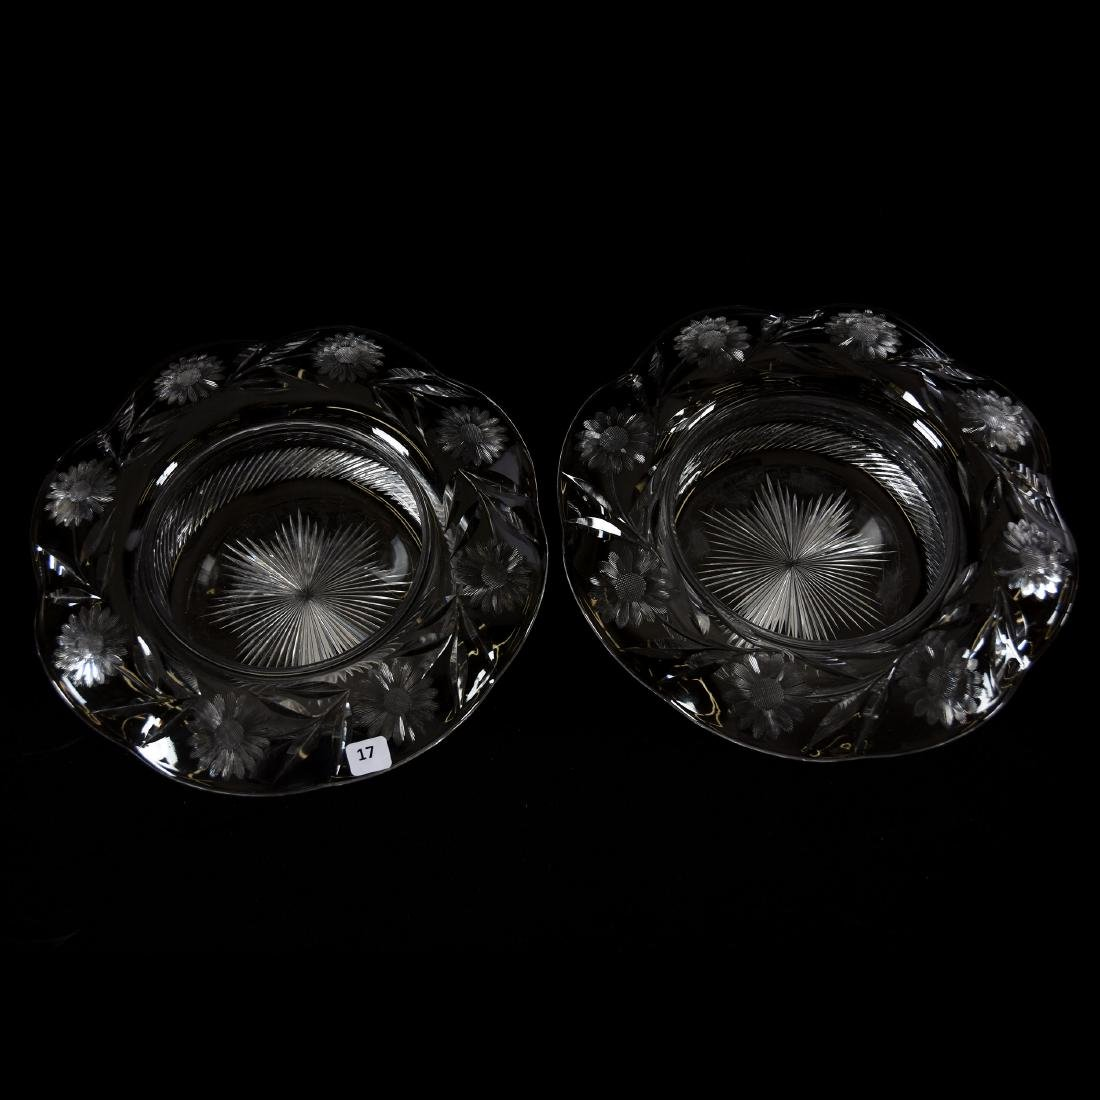 Pair Bowls, Engraved Floral Border, Ray Cut Center - 2